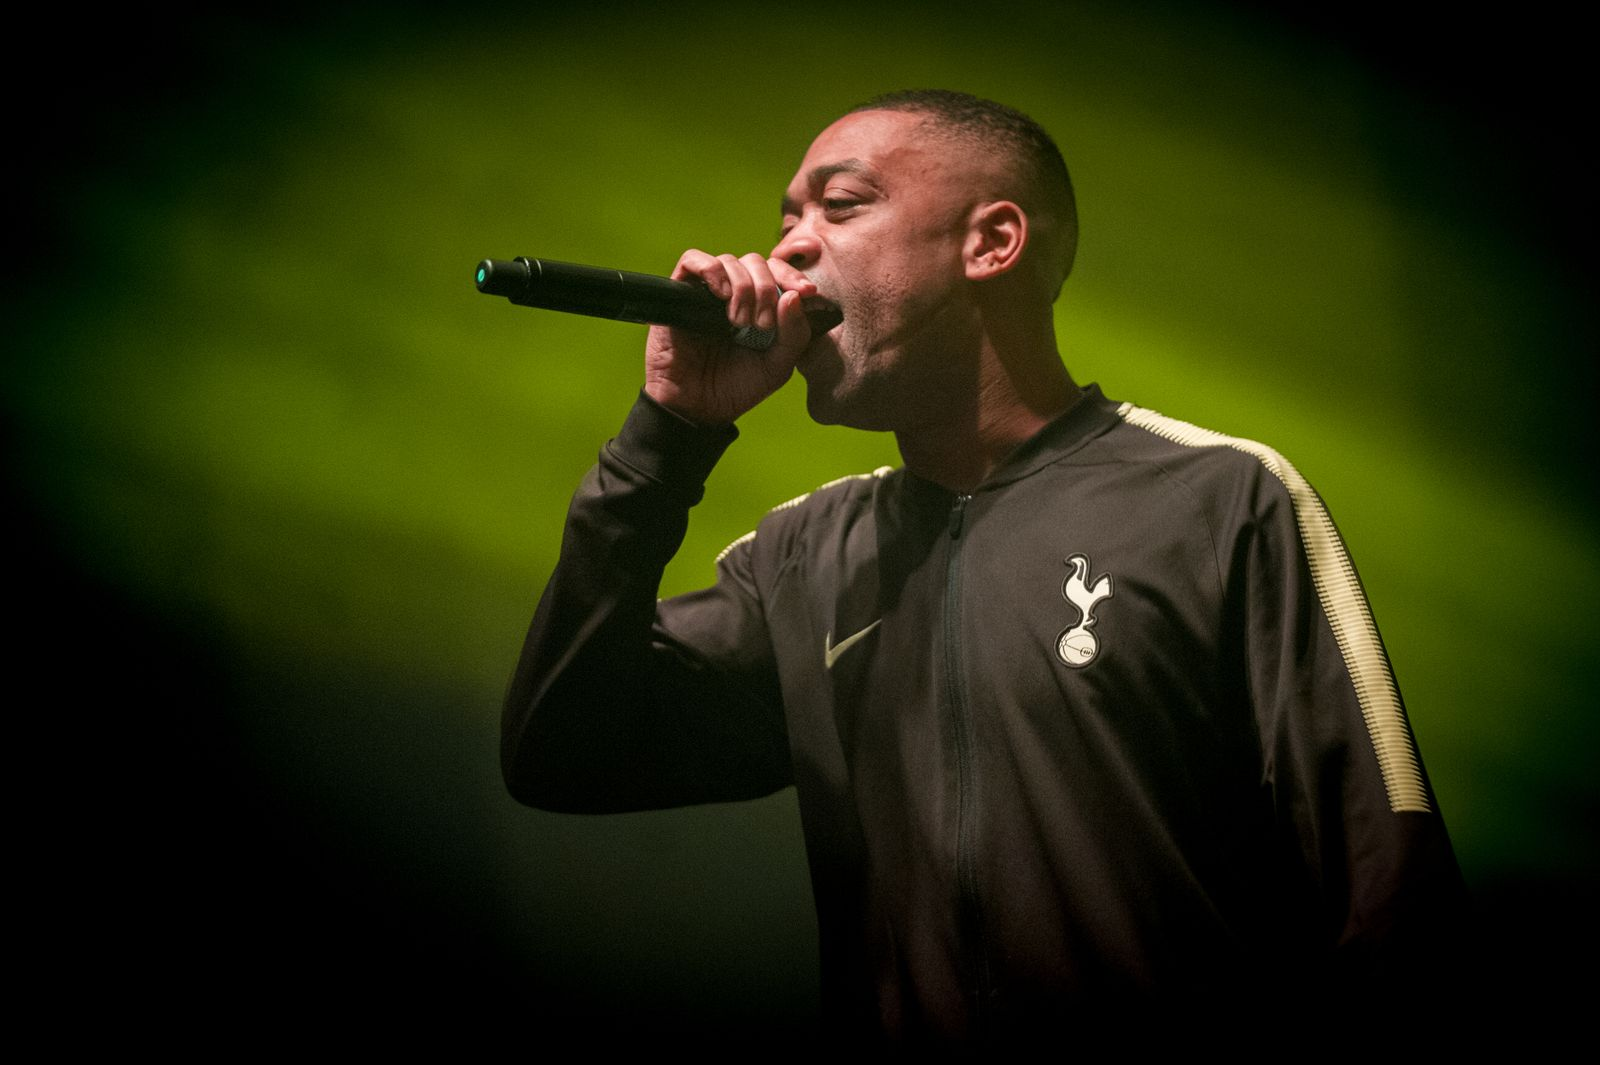 Wiley Performs At O2 Academy Brixton - London